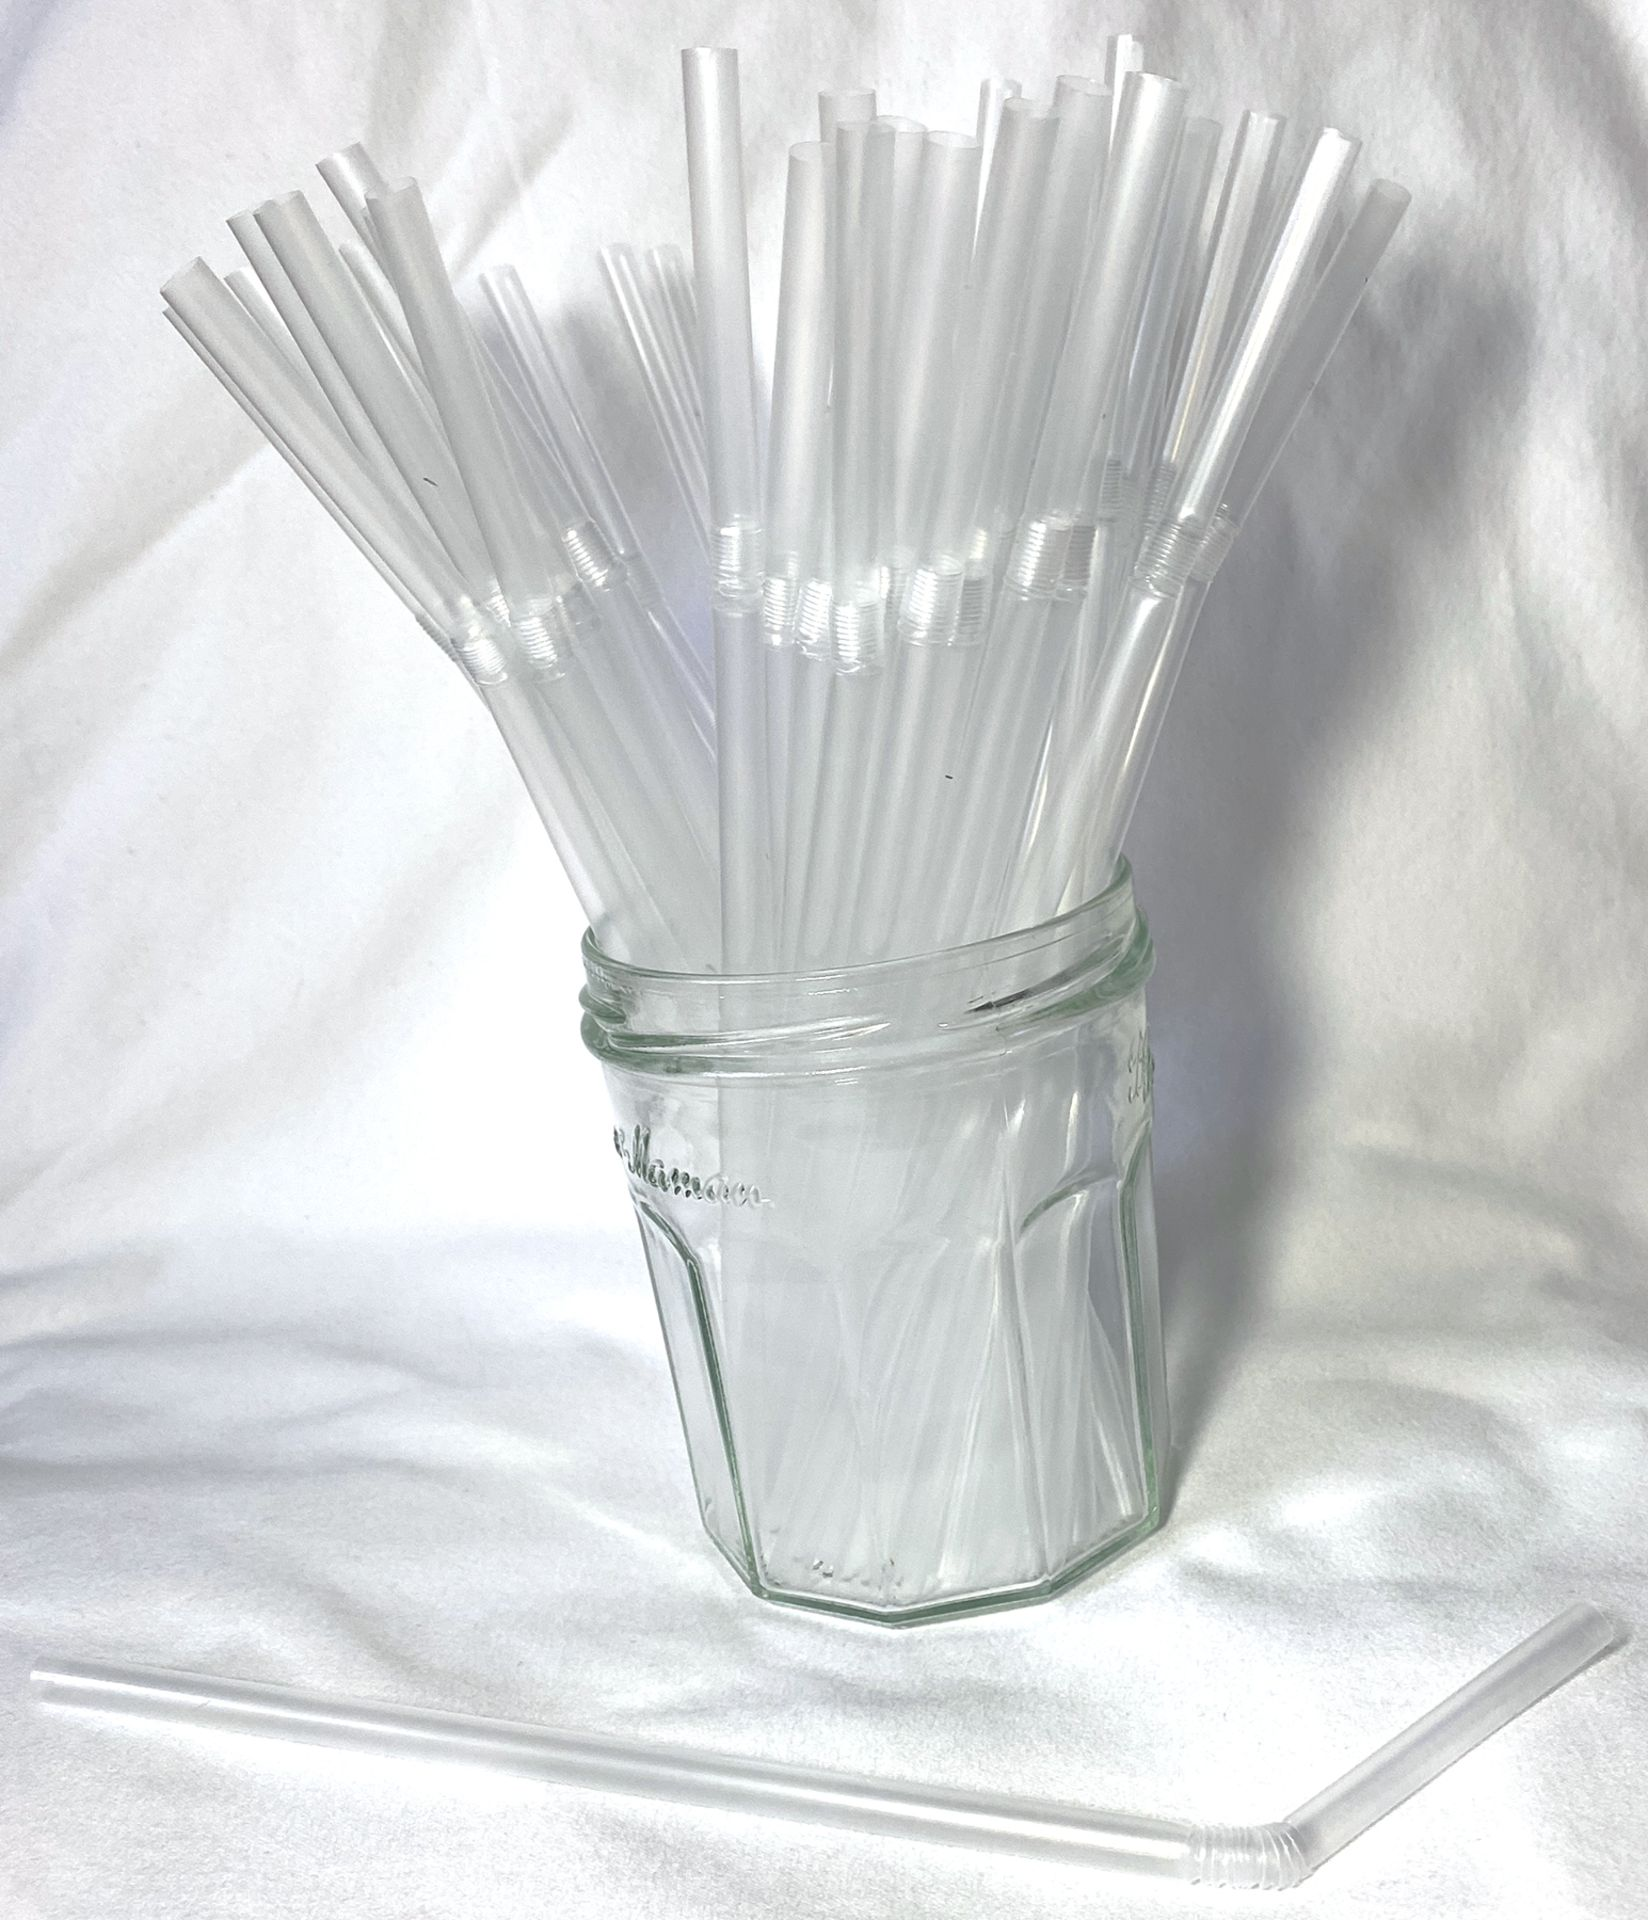 Lot 332 - 5 x Boxes of Clear Flexi Straws by 888 Gastro Disposables